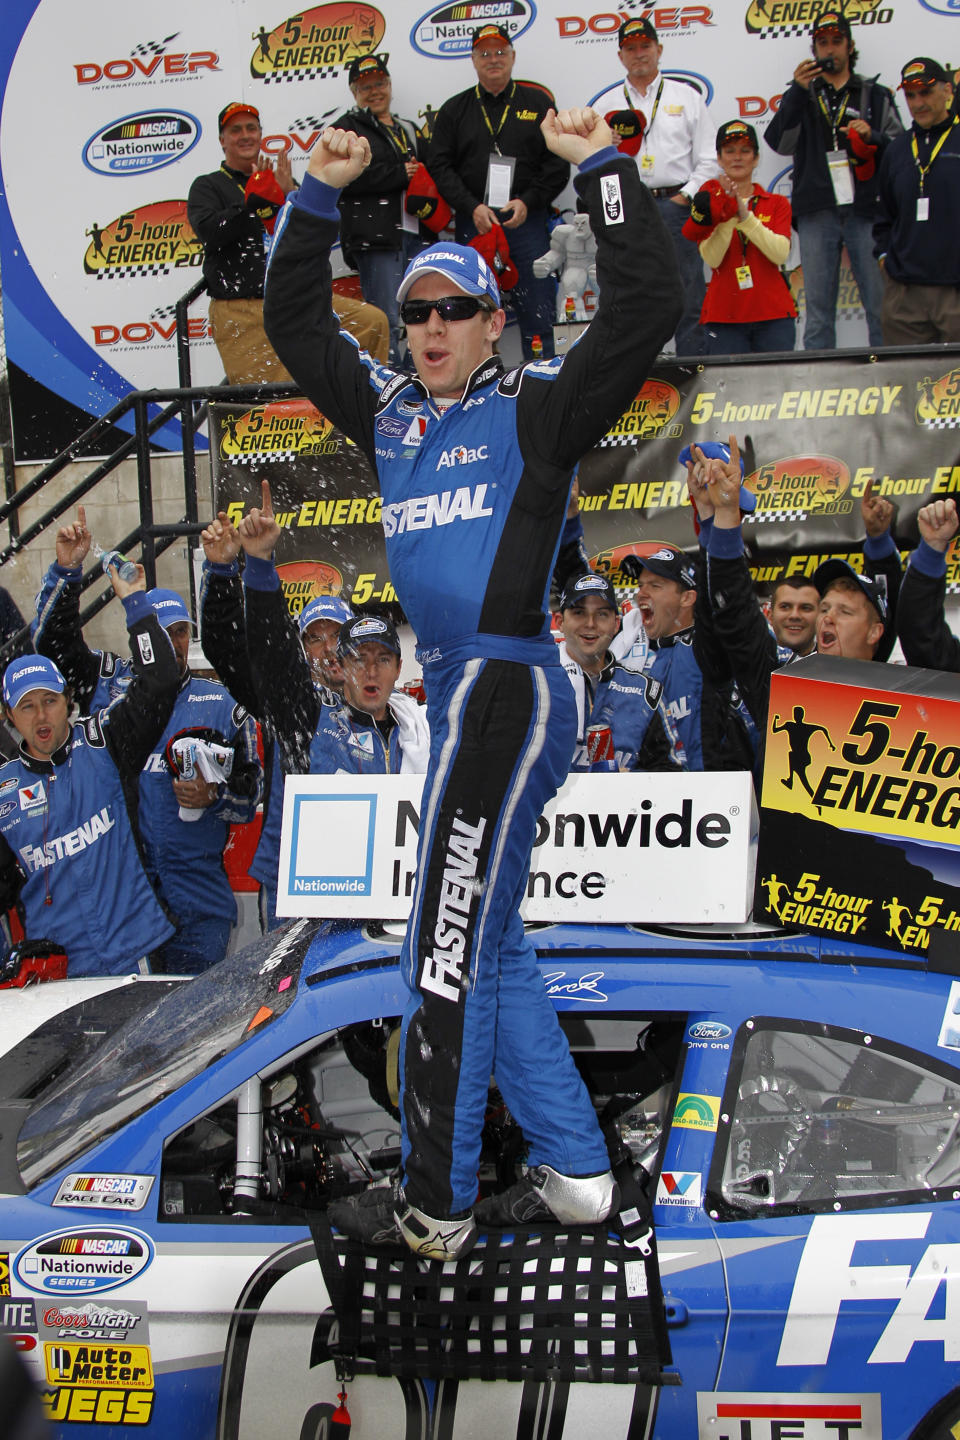 Driver Carl Edwards celebrates in victory lane after winning the NASCAR Nationwide series 5-hour ENERGY 200 auto race, Saturday, May 14, 2011, in Dover, Del. (AP Photo/Russ Hamilton Sr.)